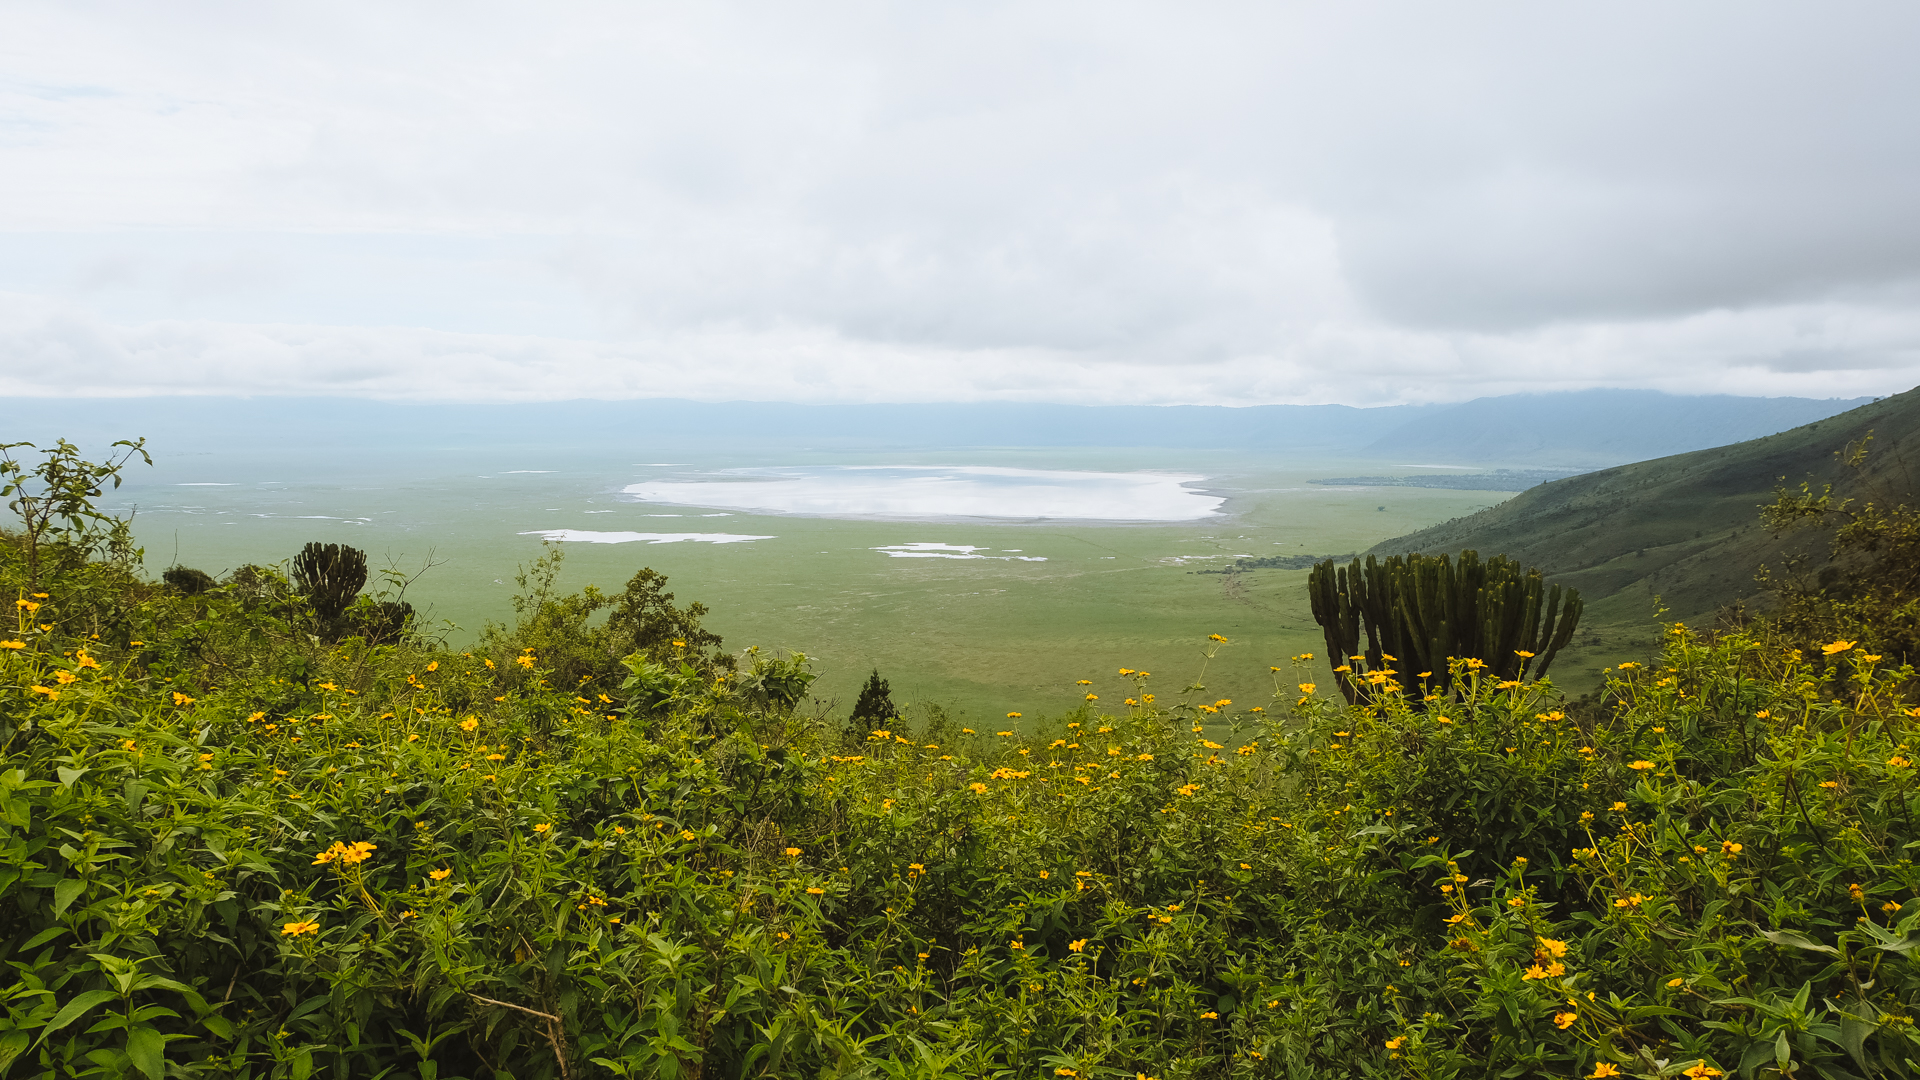 Spectacular view from on the ledge of the crater in the Ngorongoro Conservation Area, Tanzania